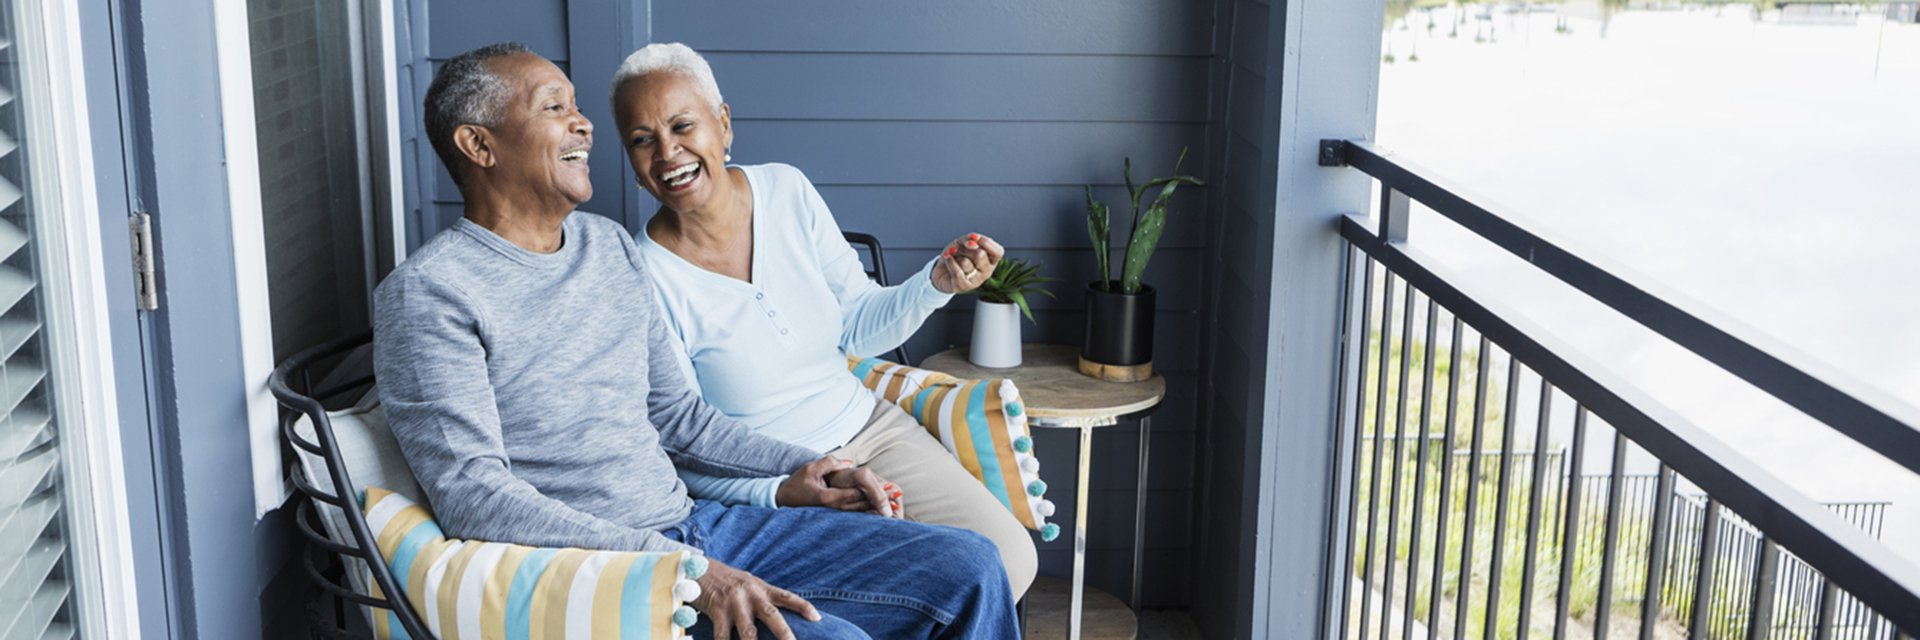 couple smiling and sitting on porch